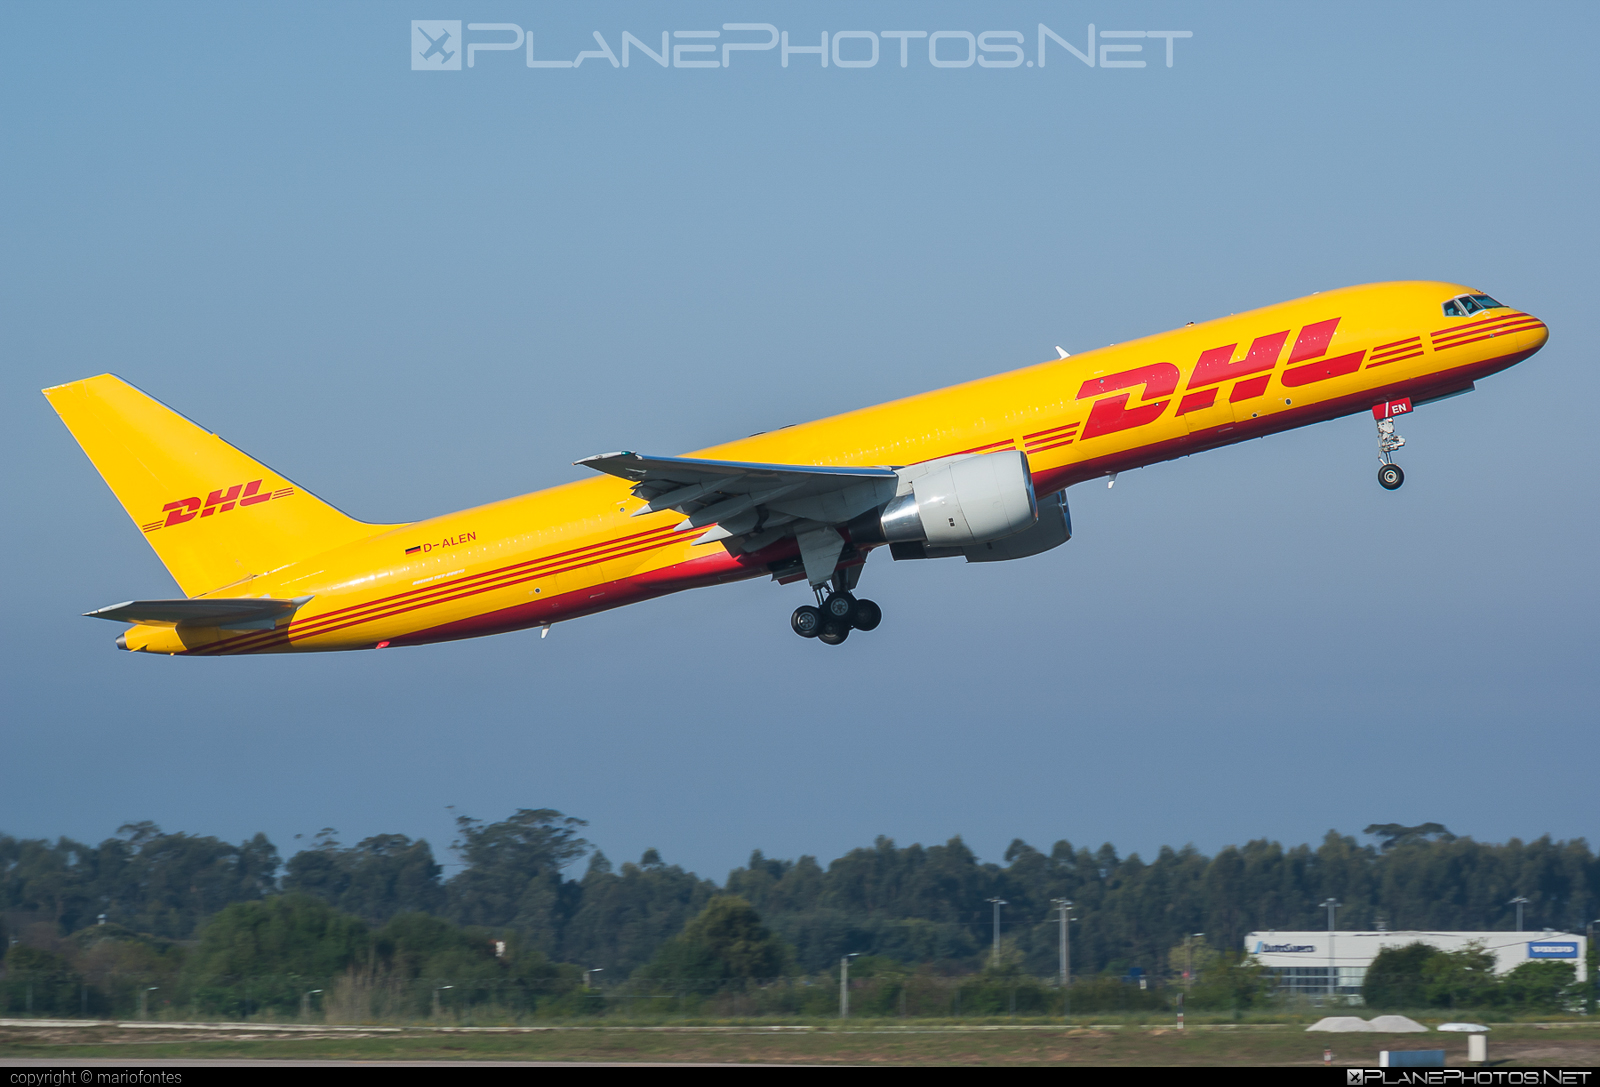 Boeing 757-200PCF - D-ALEN operated by DHL (European Air Transport) #b757 #b757200pcf #b757pcf #boeing #boeing757 #boeing757200pcf #boeing757pcf